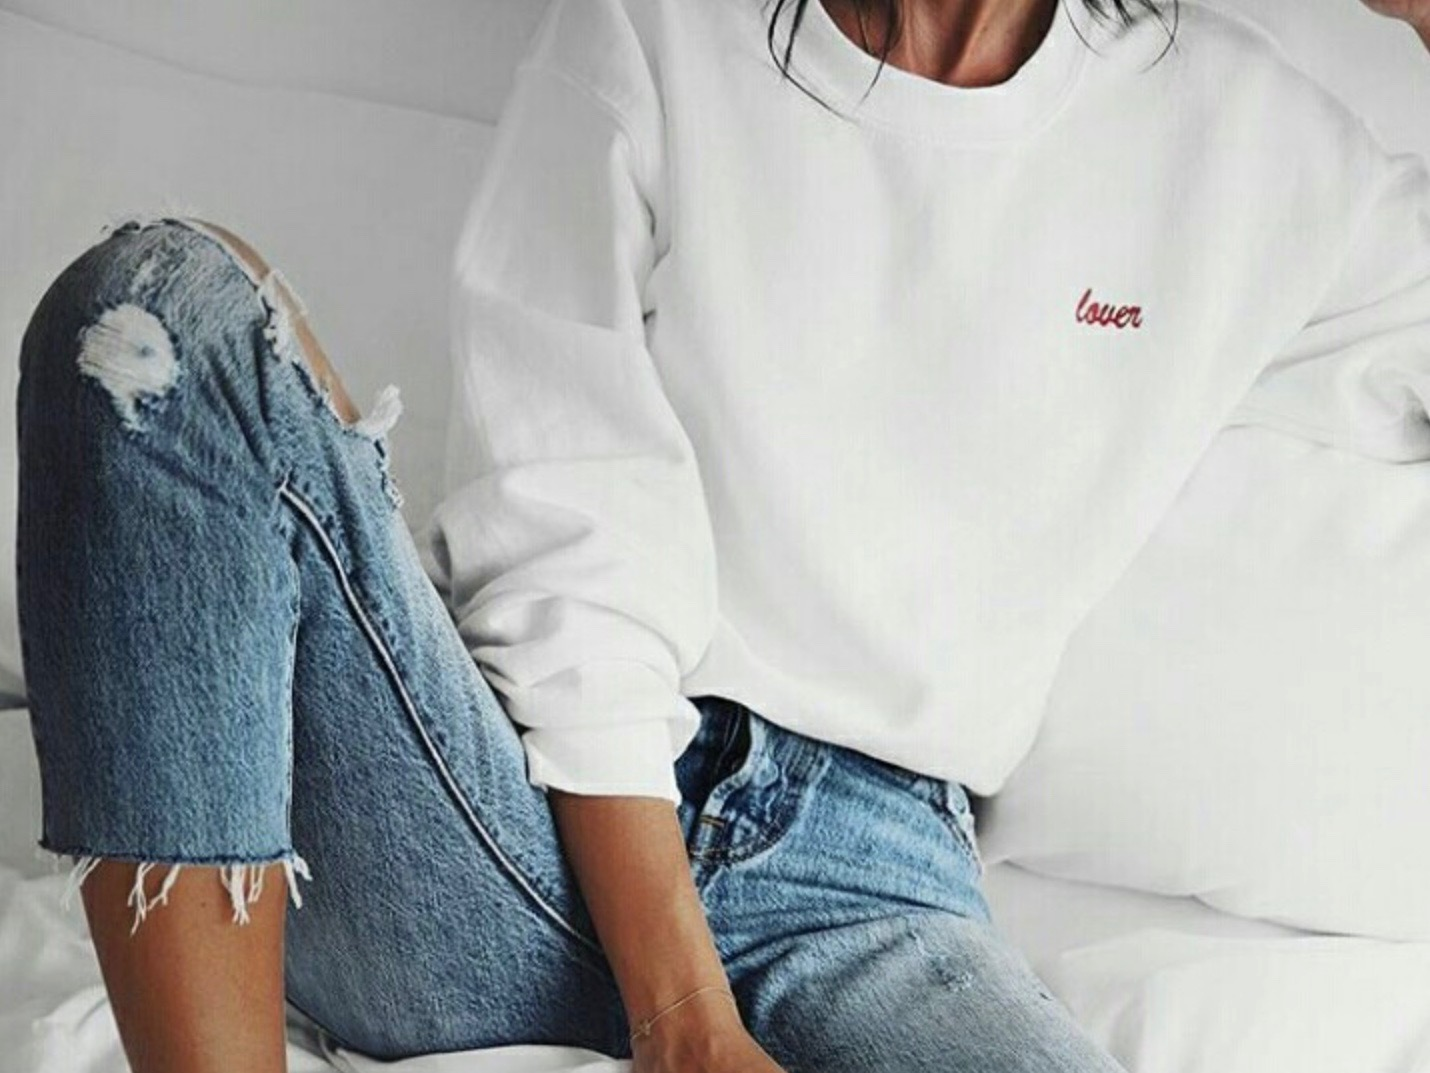 Denim Trends For Fall That Every Girl Can Rock